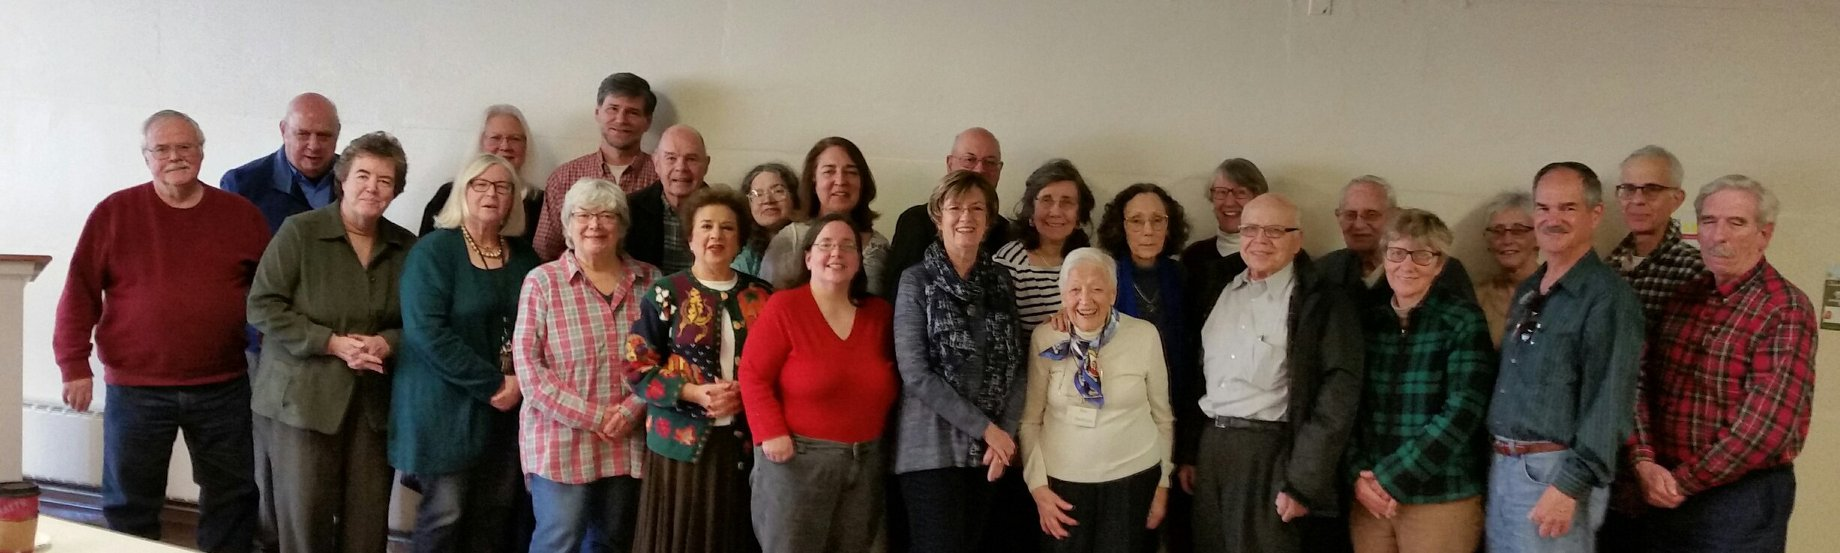 Westchester Genealogical Society